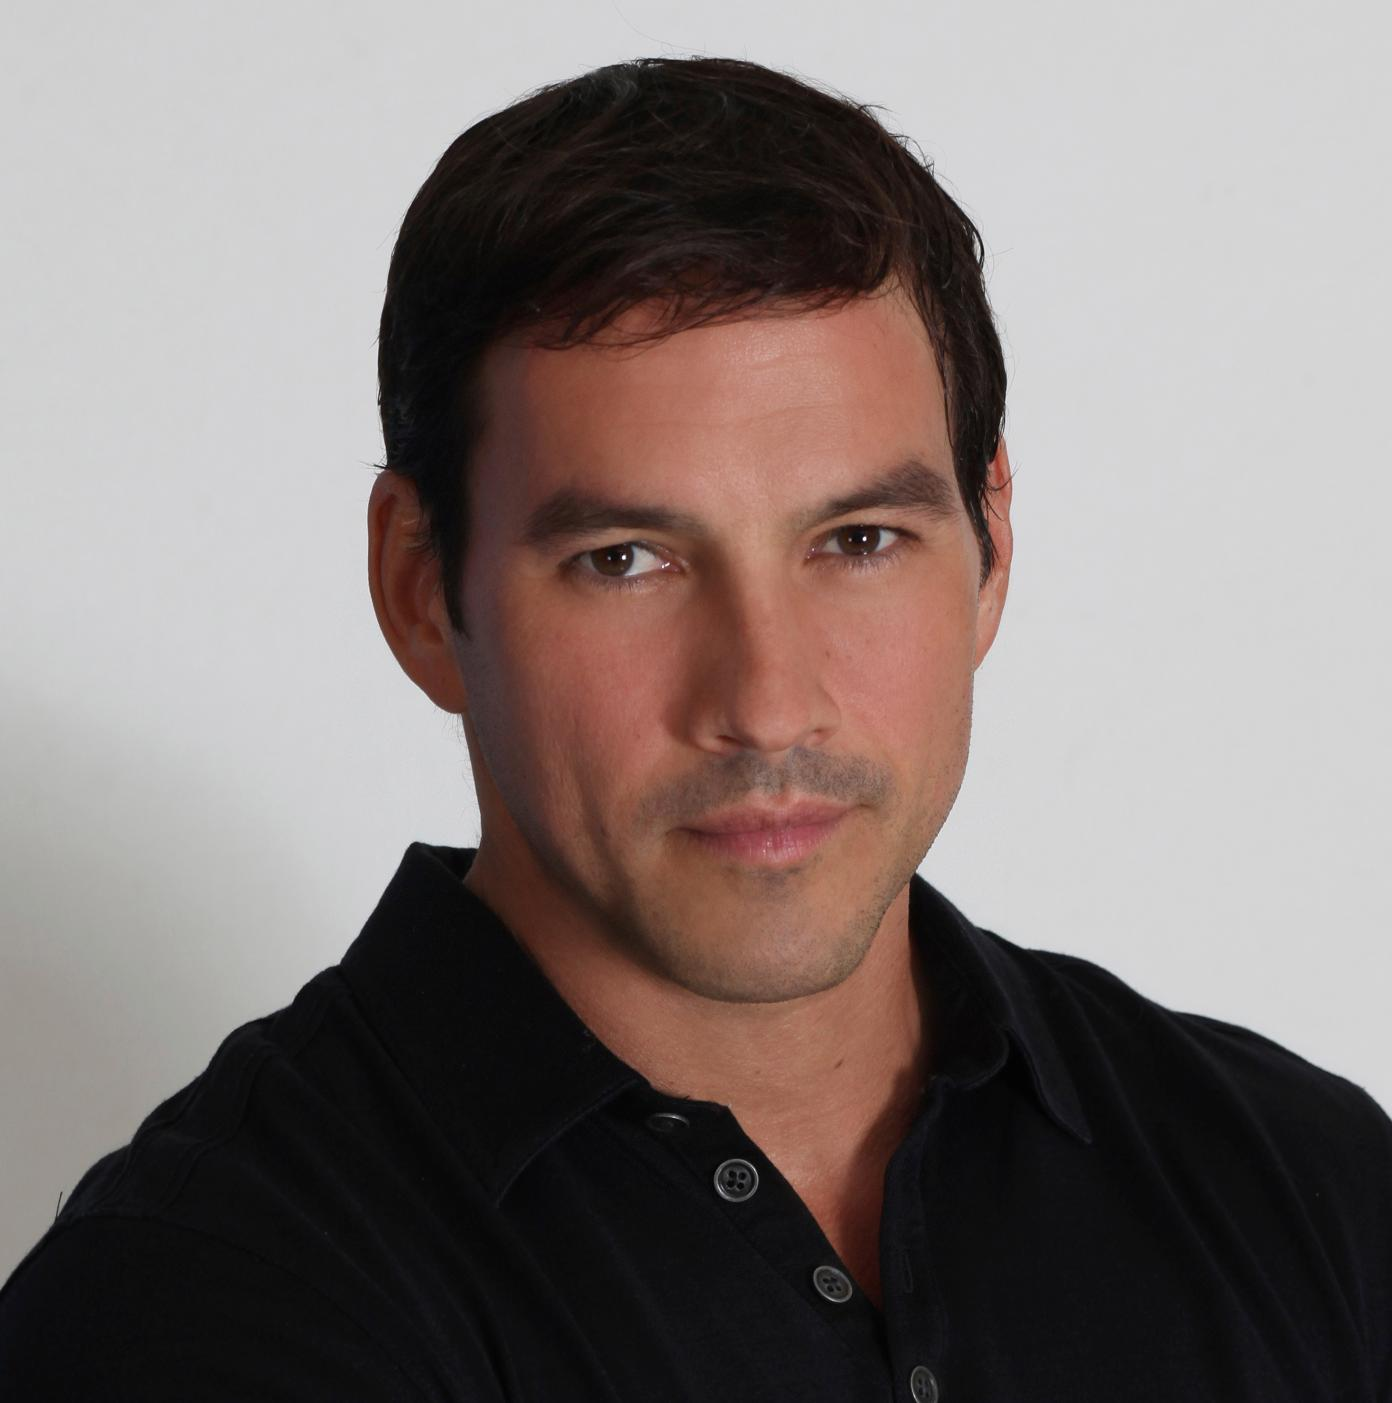 how tall is tyler christopher